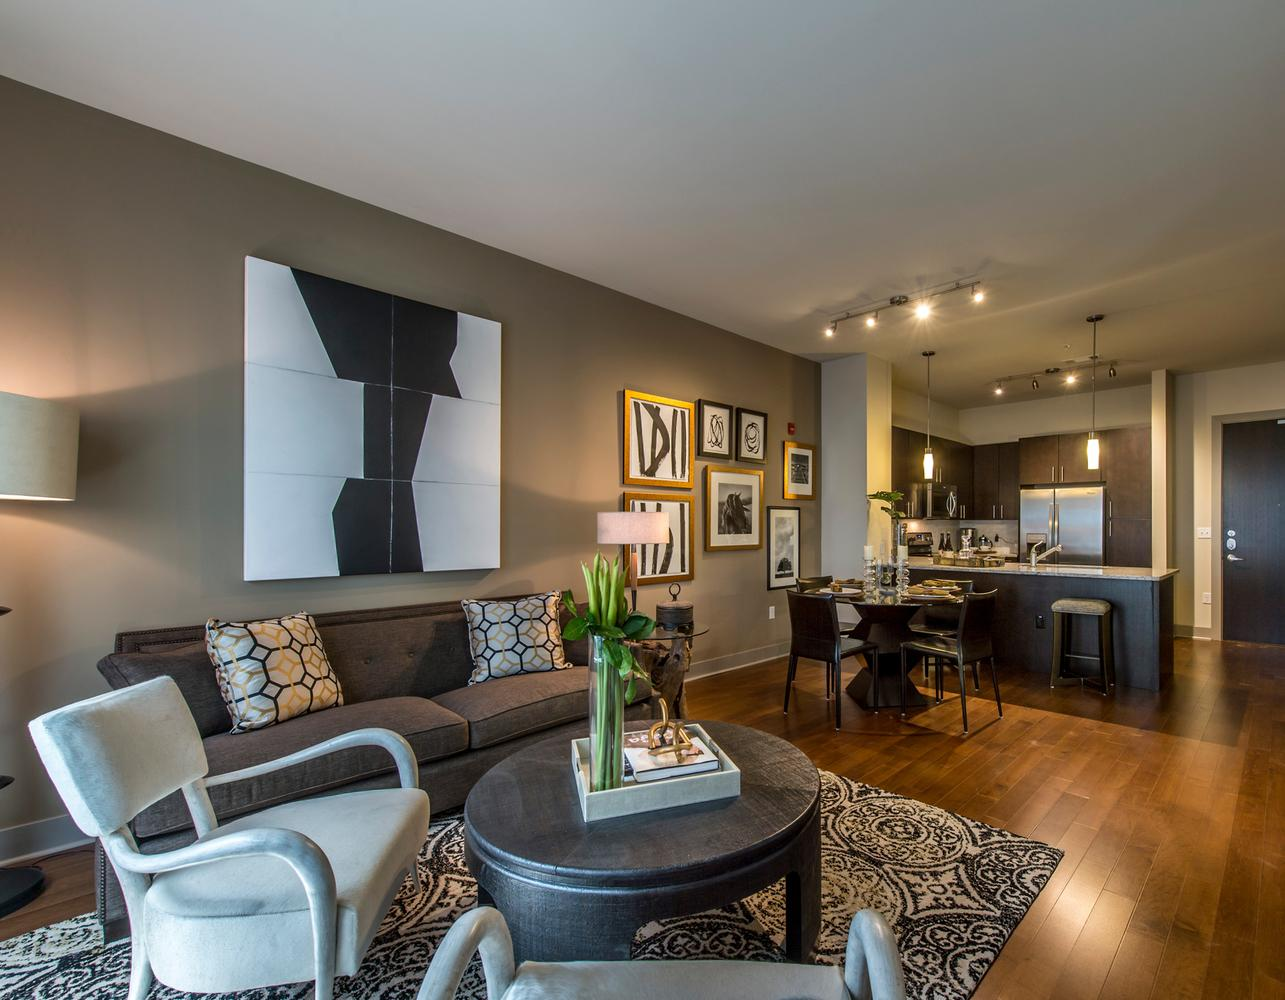 Apartments in South Norwood, Norwood, MA (see photos, floor plans ...